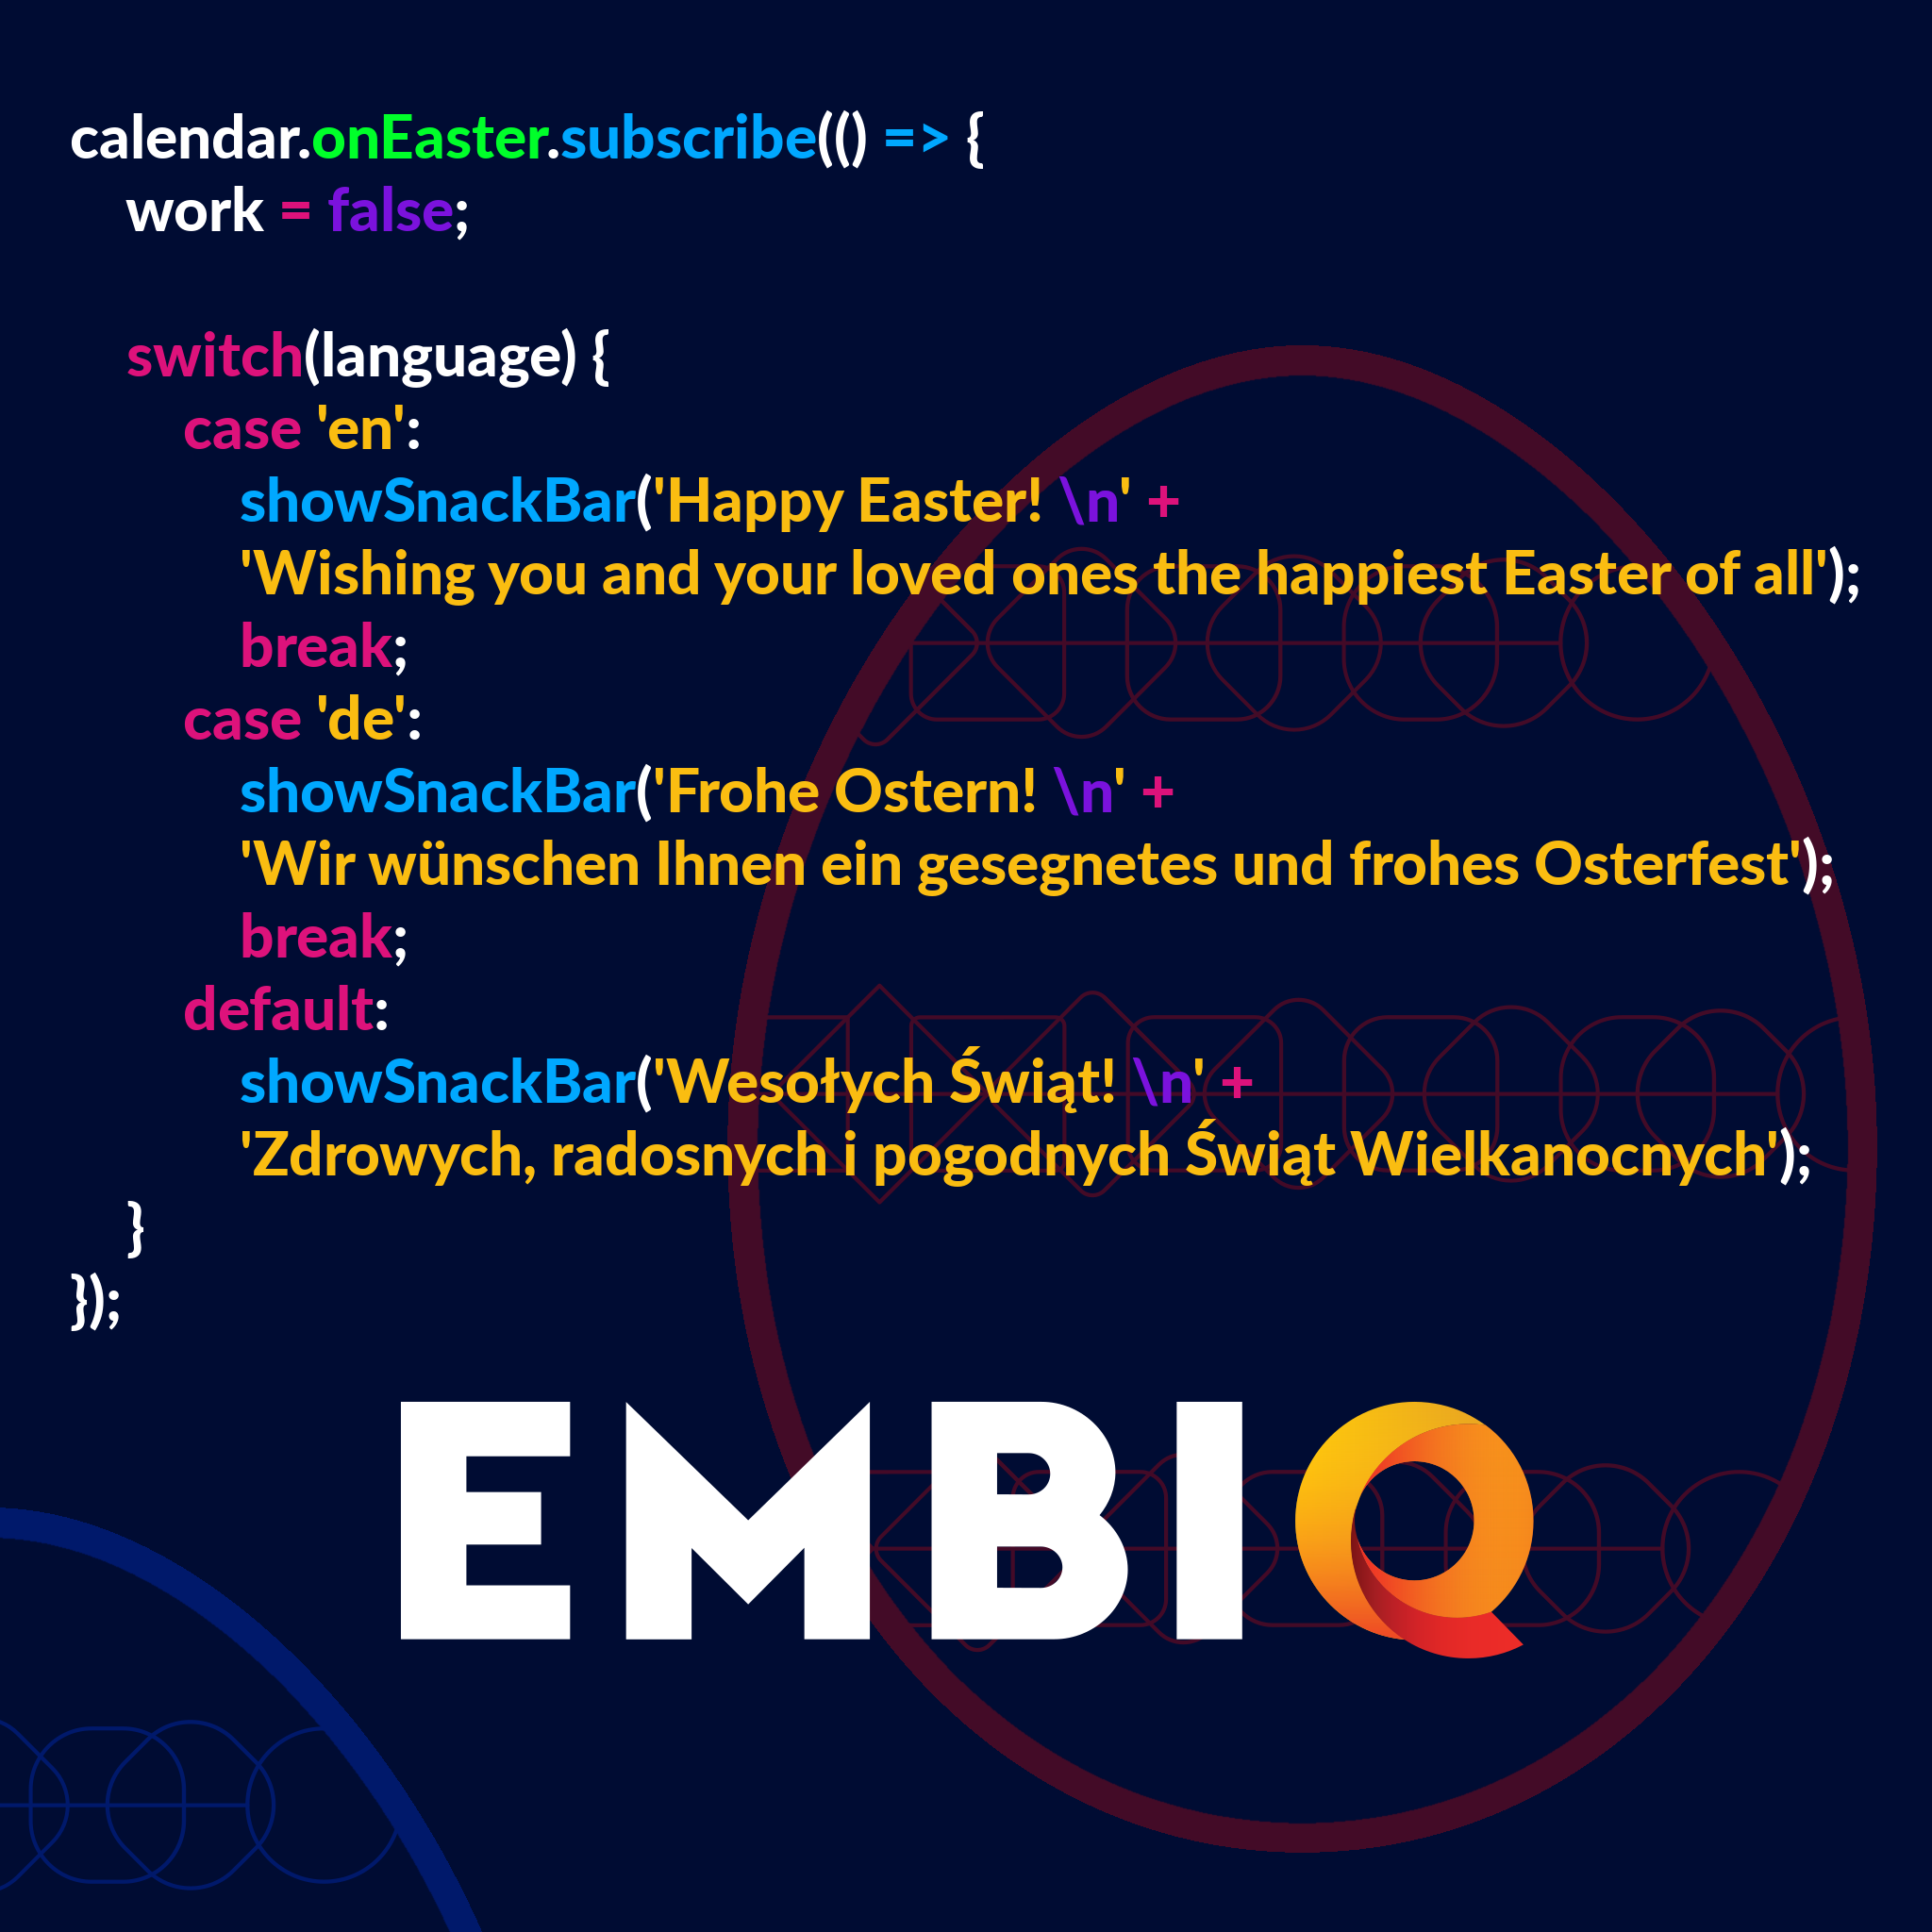 Easter Greetings from EMBIQ